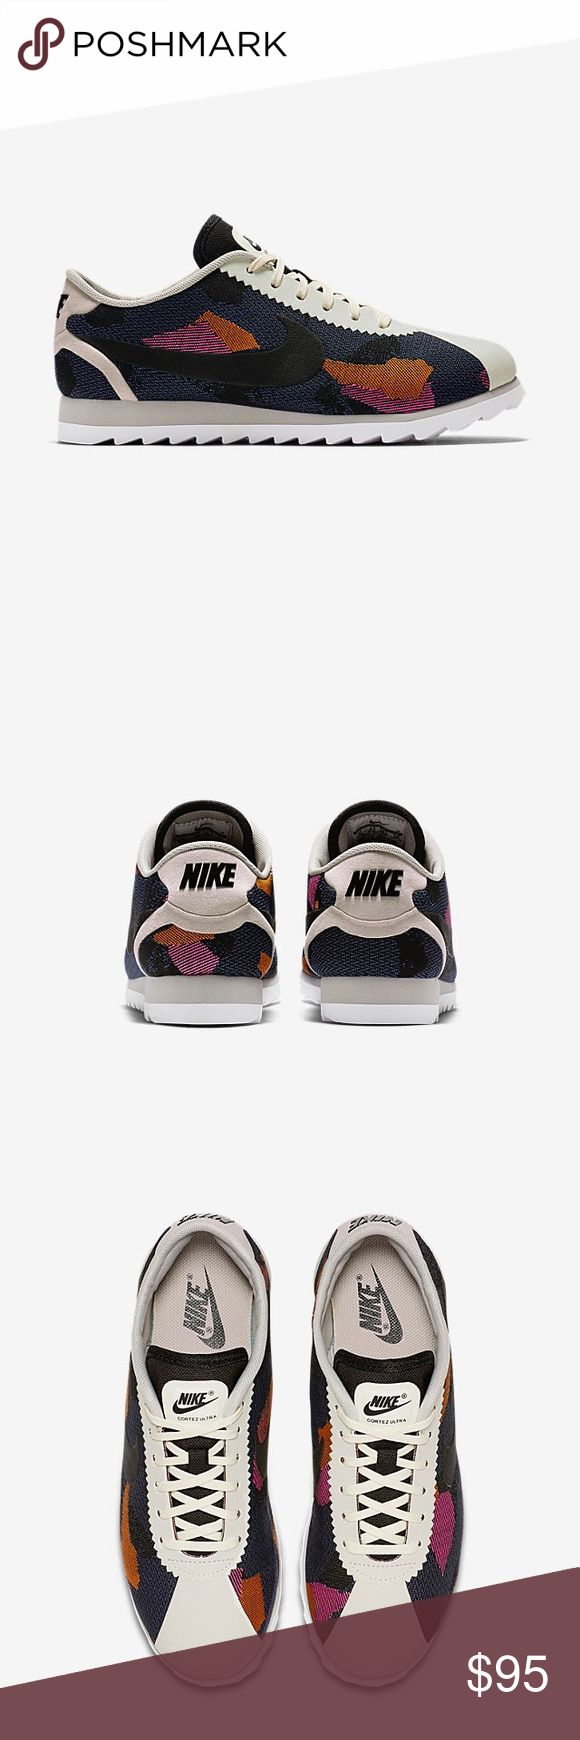 ✨🆕✨{Nike} Cortez Ultra Print Super cute, right? Brand new in box, never been worn outside, but they were a display pair on floor so the sole is a little dirty. Price is firm. Color: black, white, purple, pink....Roshe's family.   ❌ NO TRADES - SELLING ON POSH ONLY ❌ ❌ NO LOWBALLING ❌  ✅ Bundle Discounts ✅ Ship Next Day of Purchase  💯 % AUTHENTIC Nike Shoes